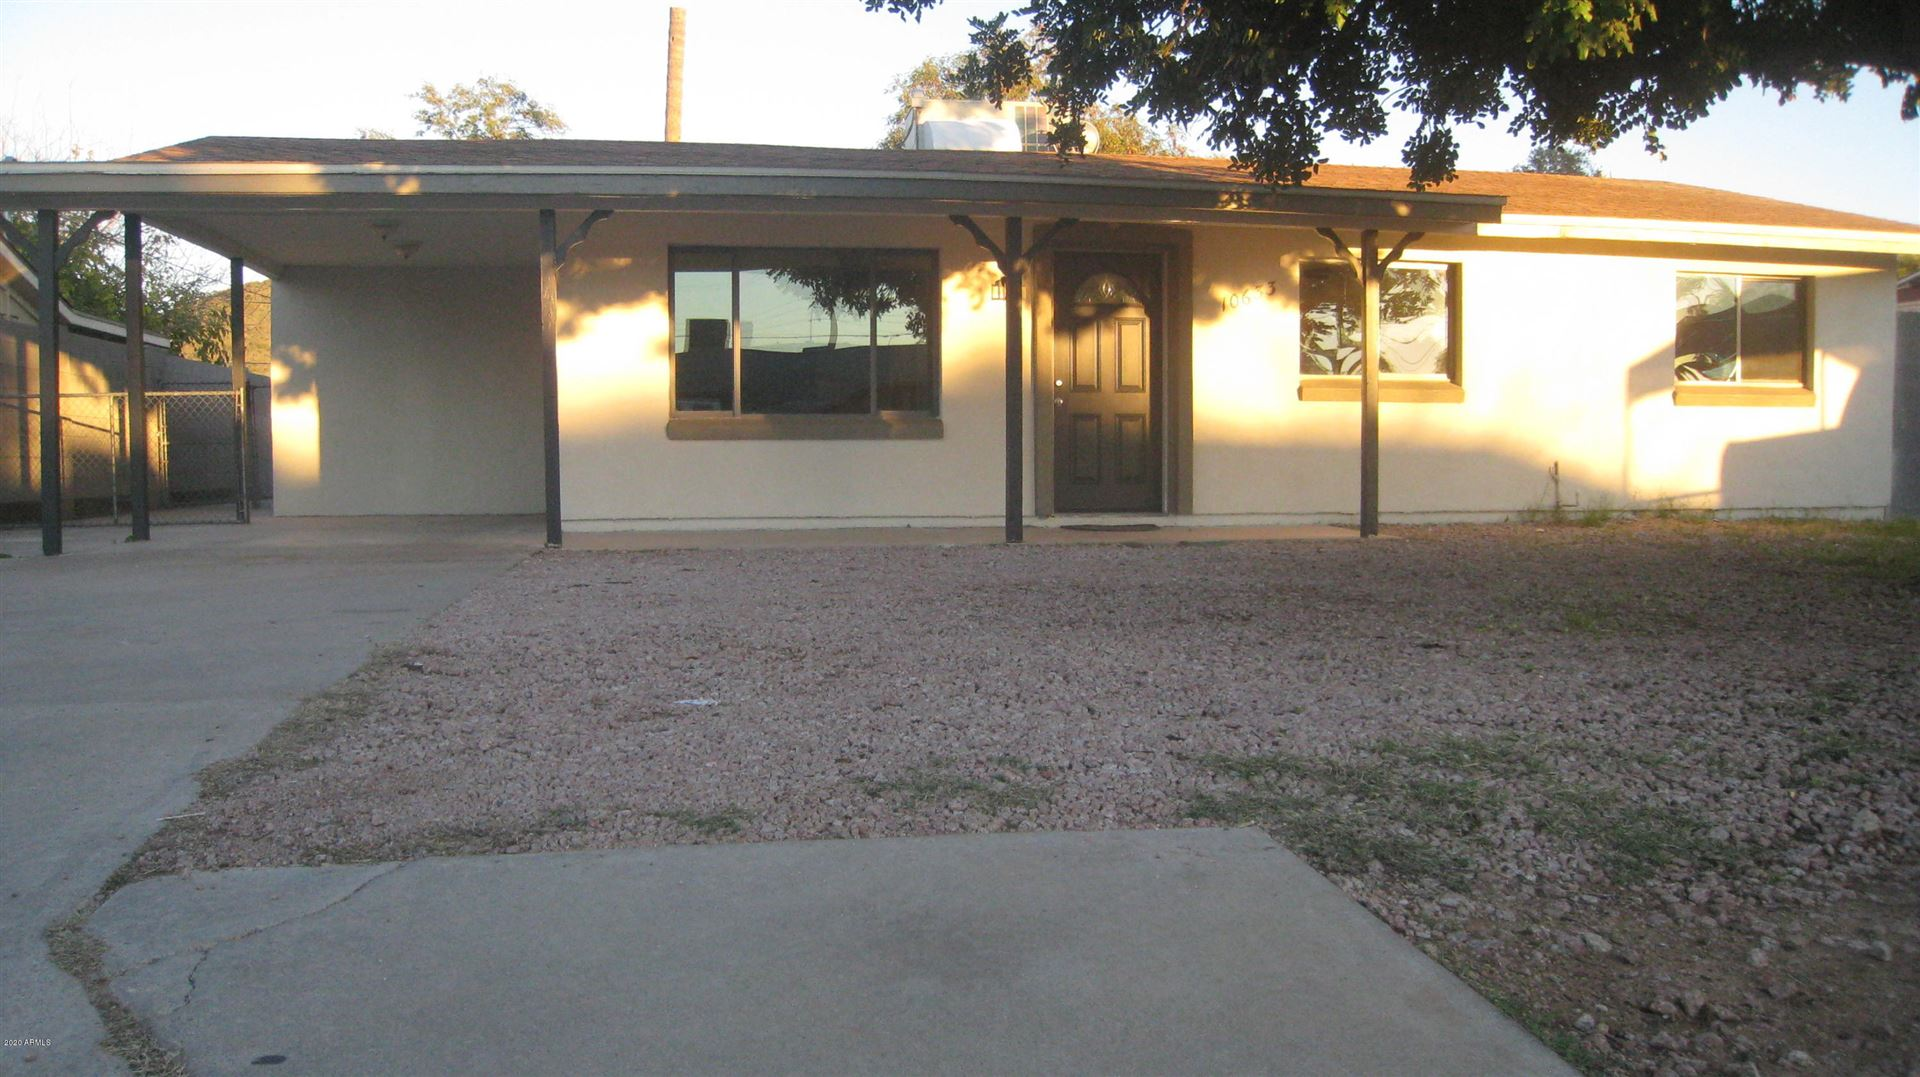 10633 N 17TH Avenue, Phoenix, AZ 85029 - MLS#: 6019582